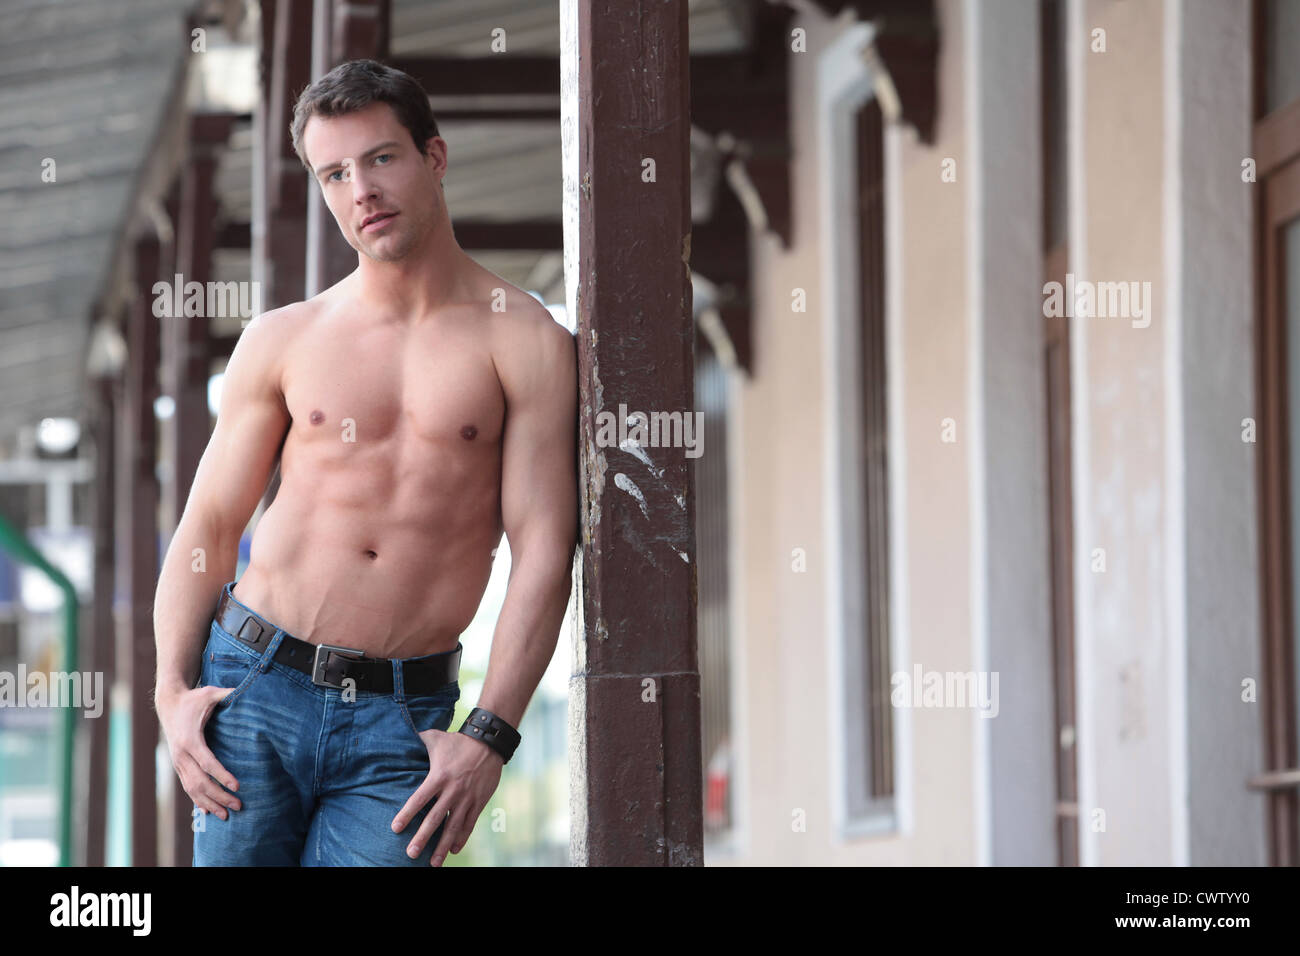 Barechested man standing outdoors - Stock Image